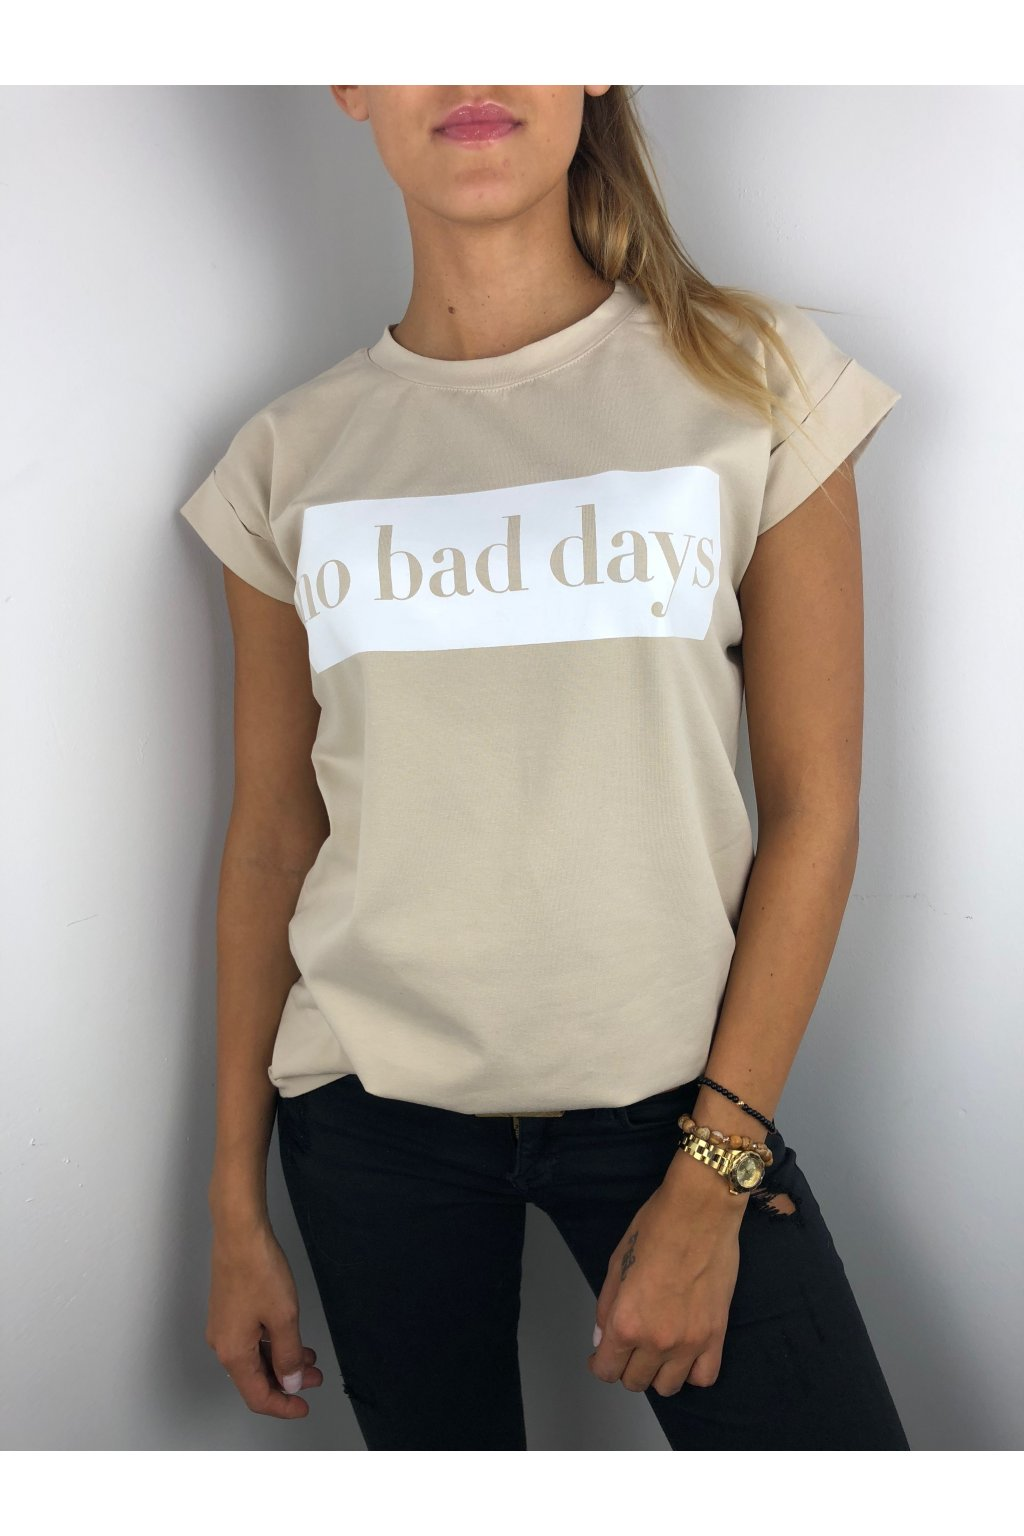 damske tricko no bad days beige eshopat cz 1